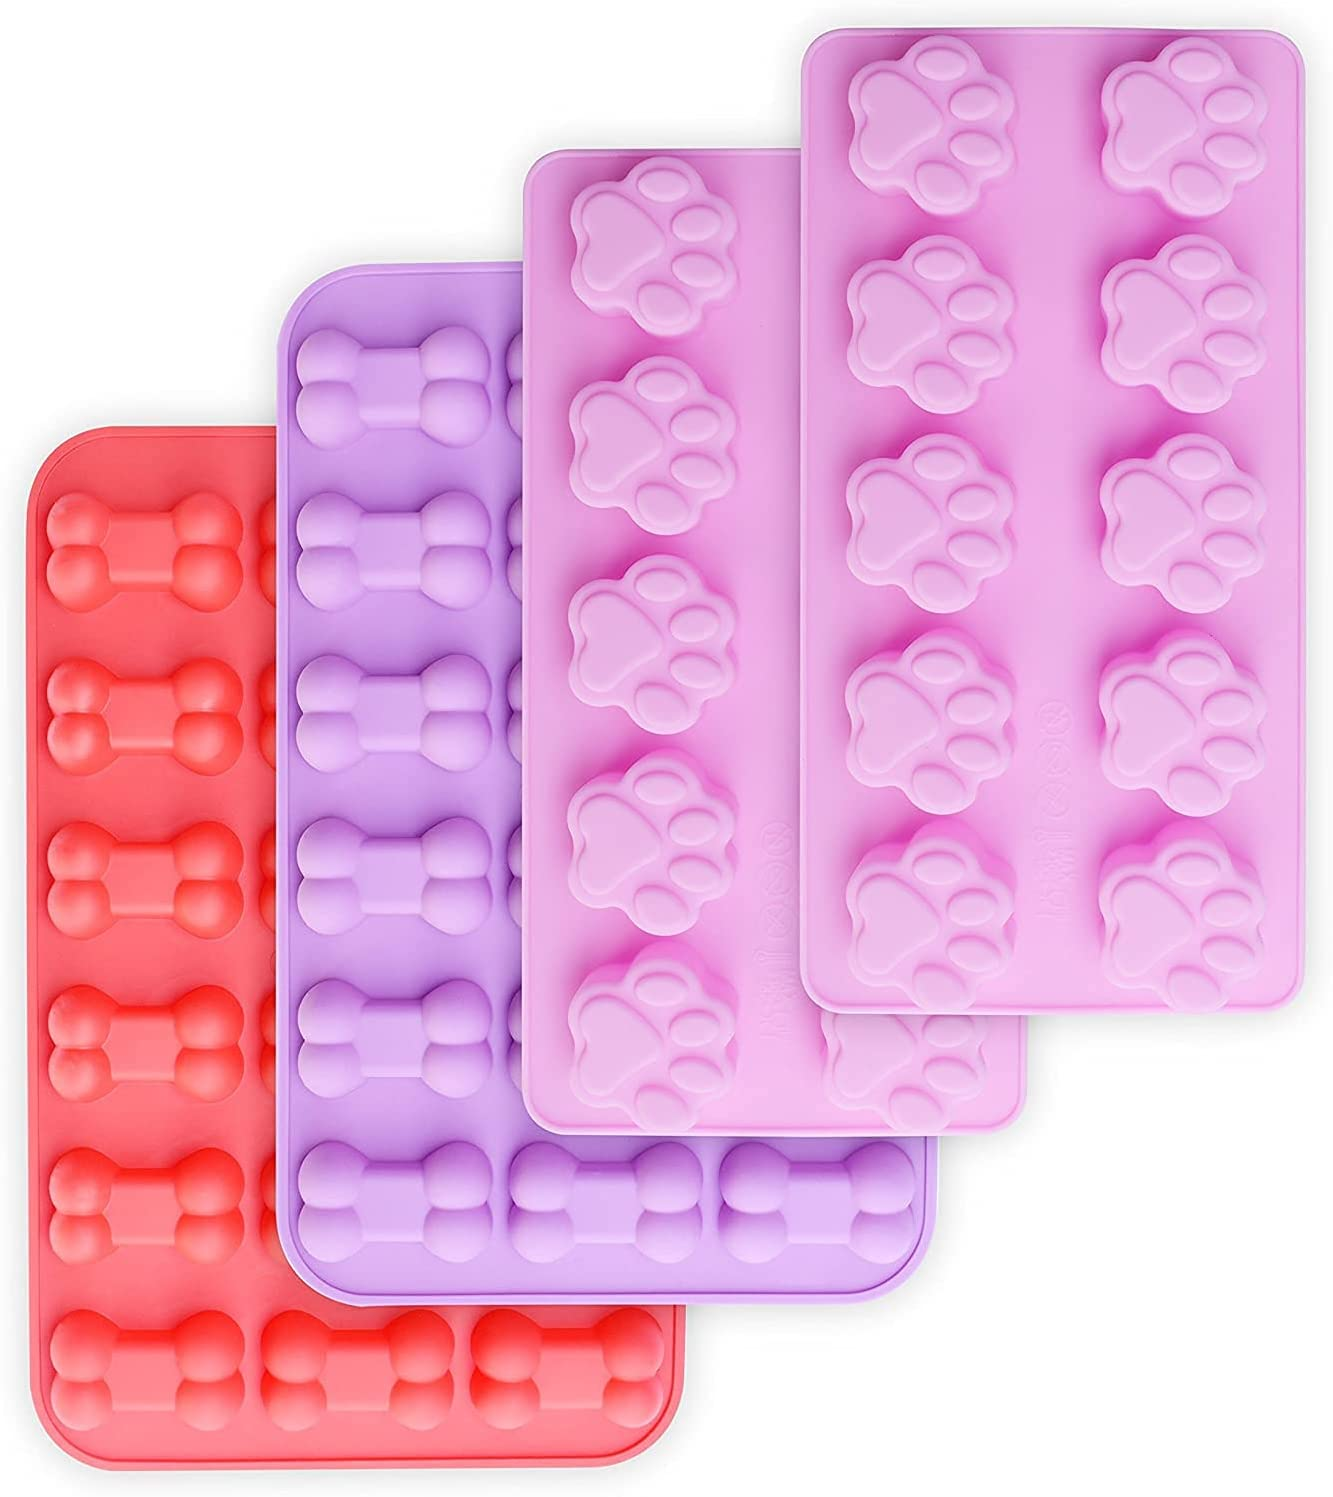 Cluo Puppy 2021 model Dog Paw and Our shop OFFers the best service Bone Non-Stick Food Grade Silicone Molds